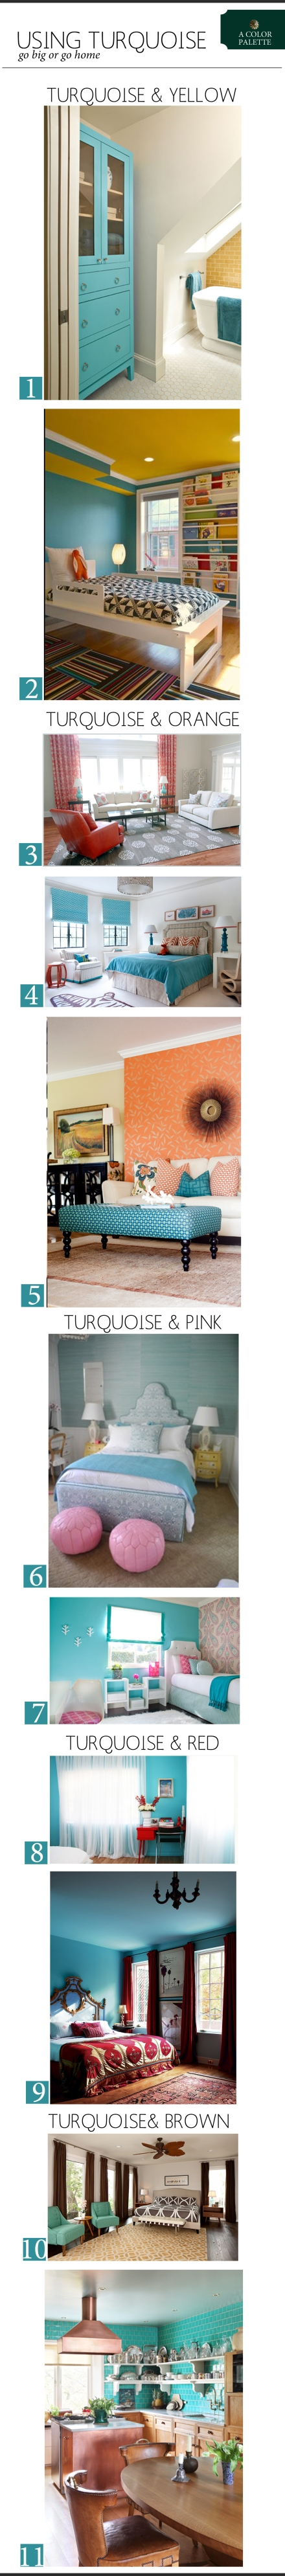 adding-turquoise-to-your-color-palette copy